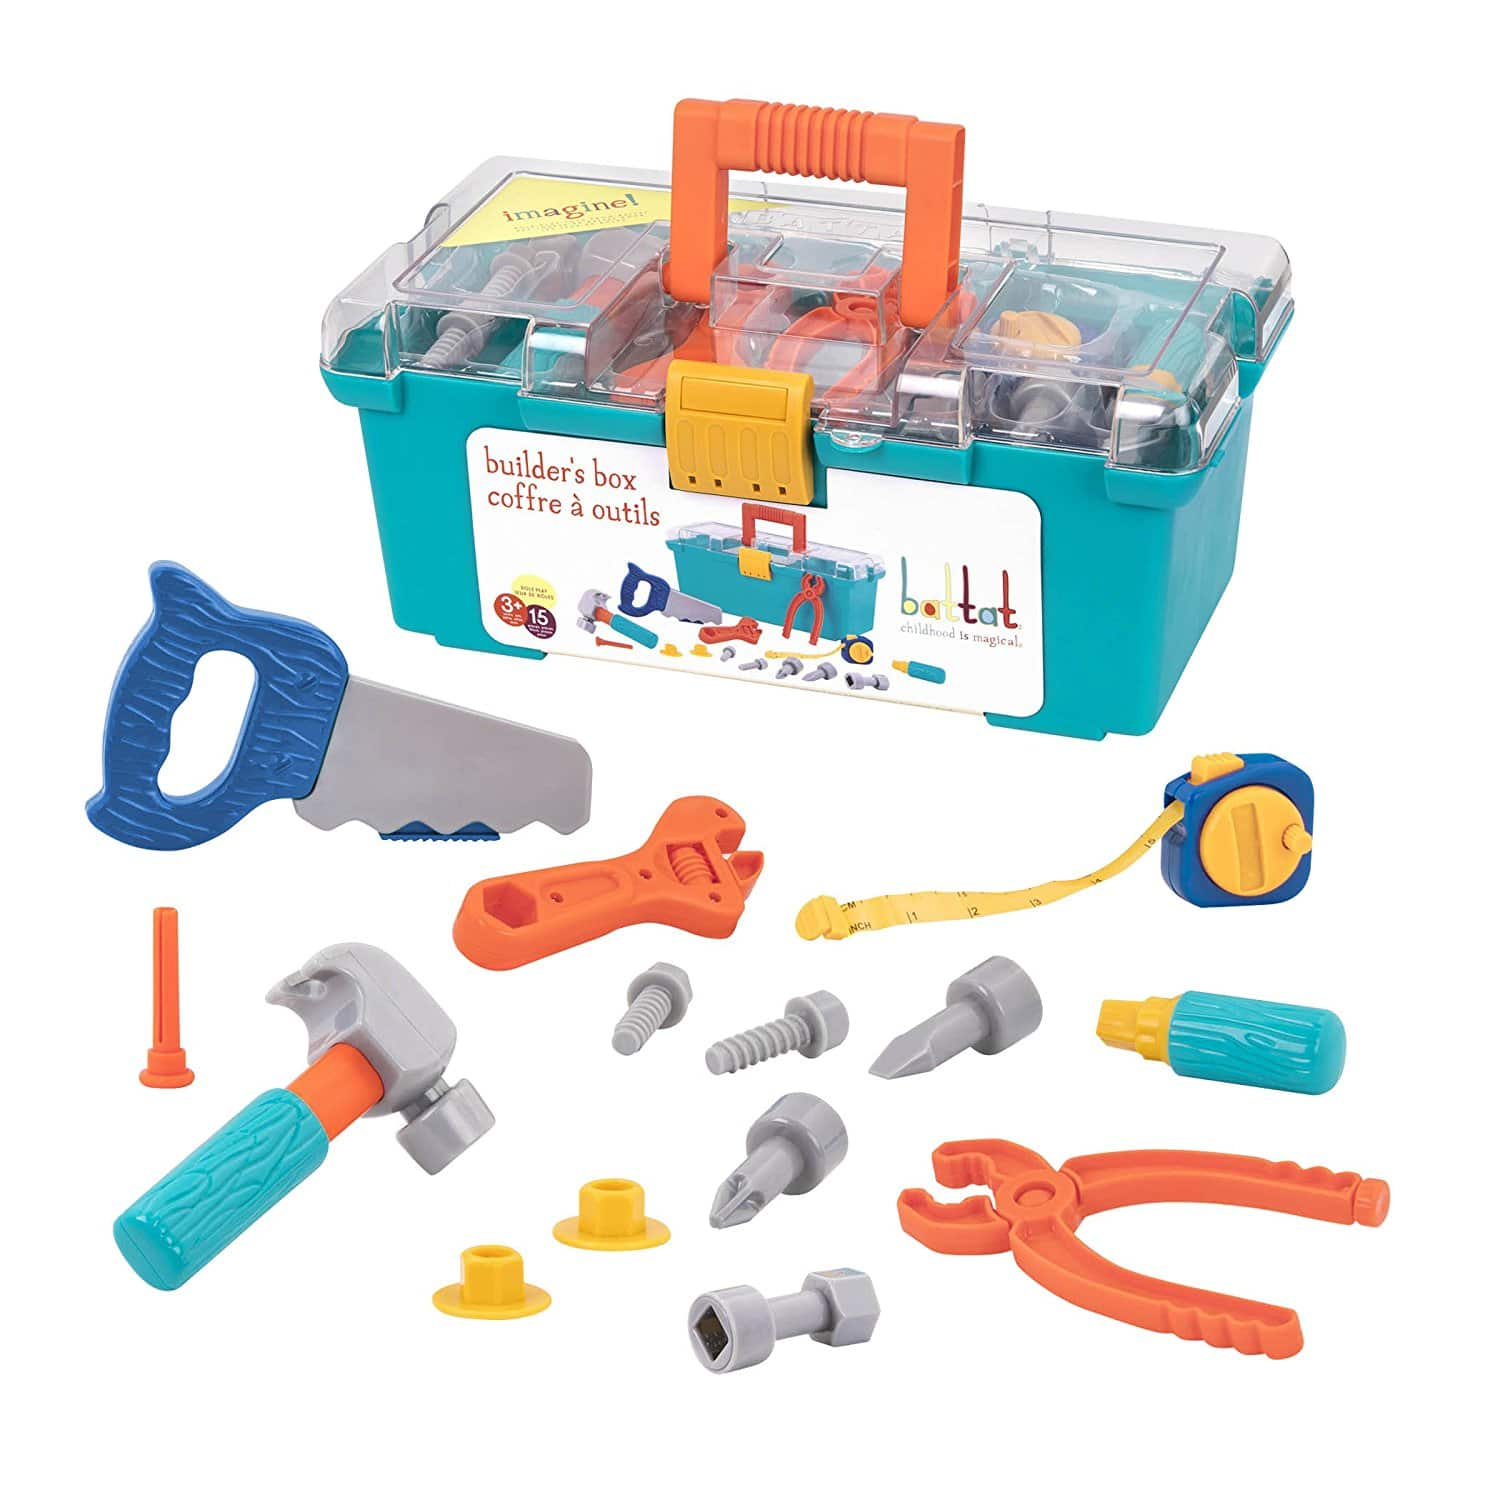 15 Piece Battat Builders Box Contractor Toy Playset for Kids